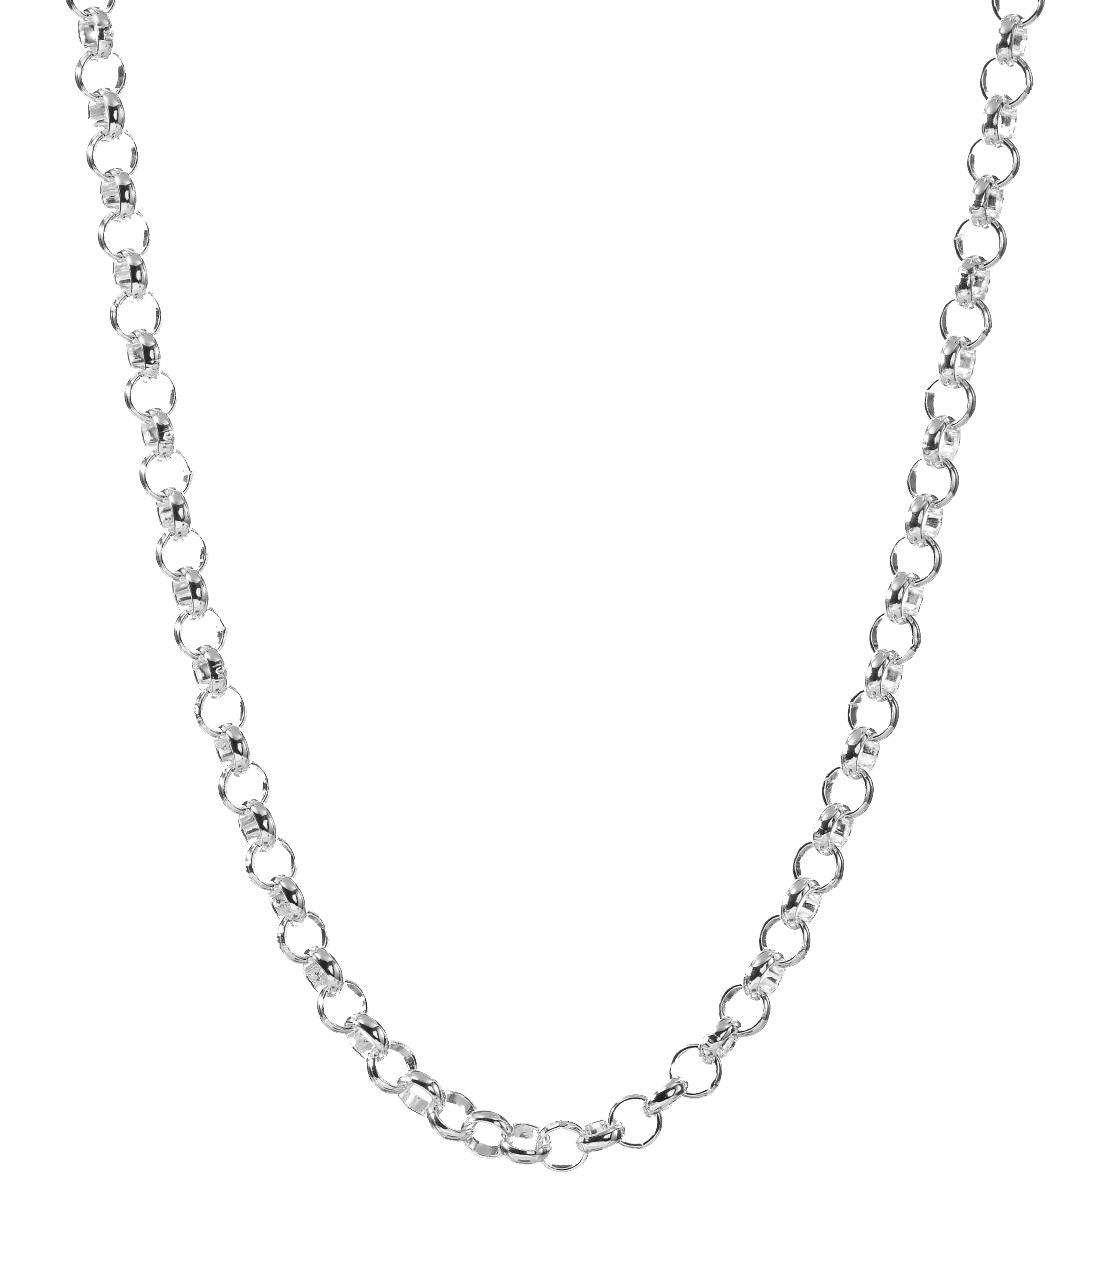 Chain PNG - 2197